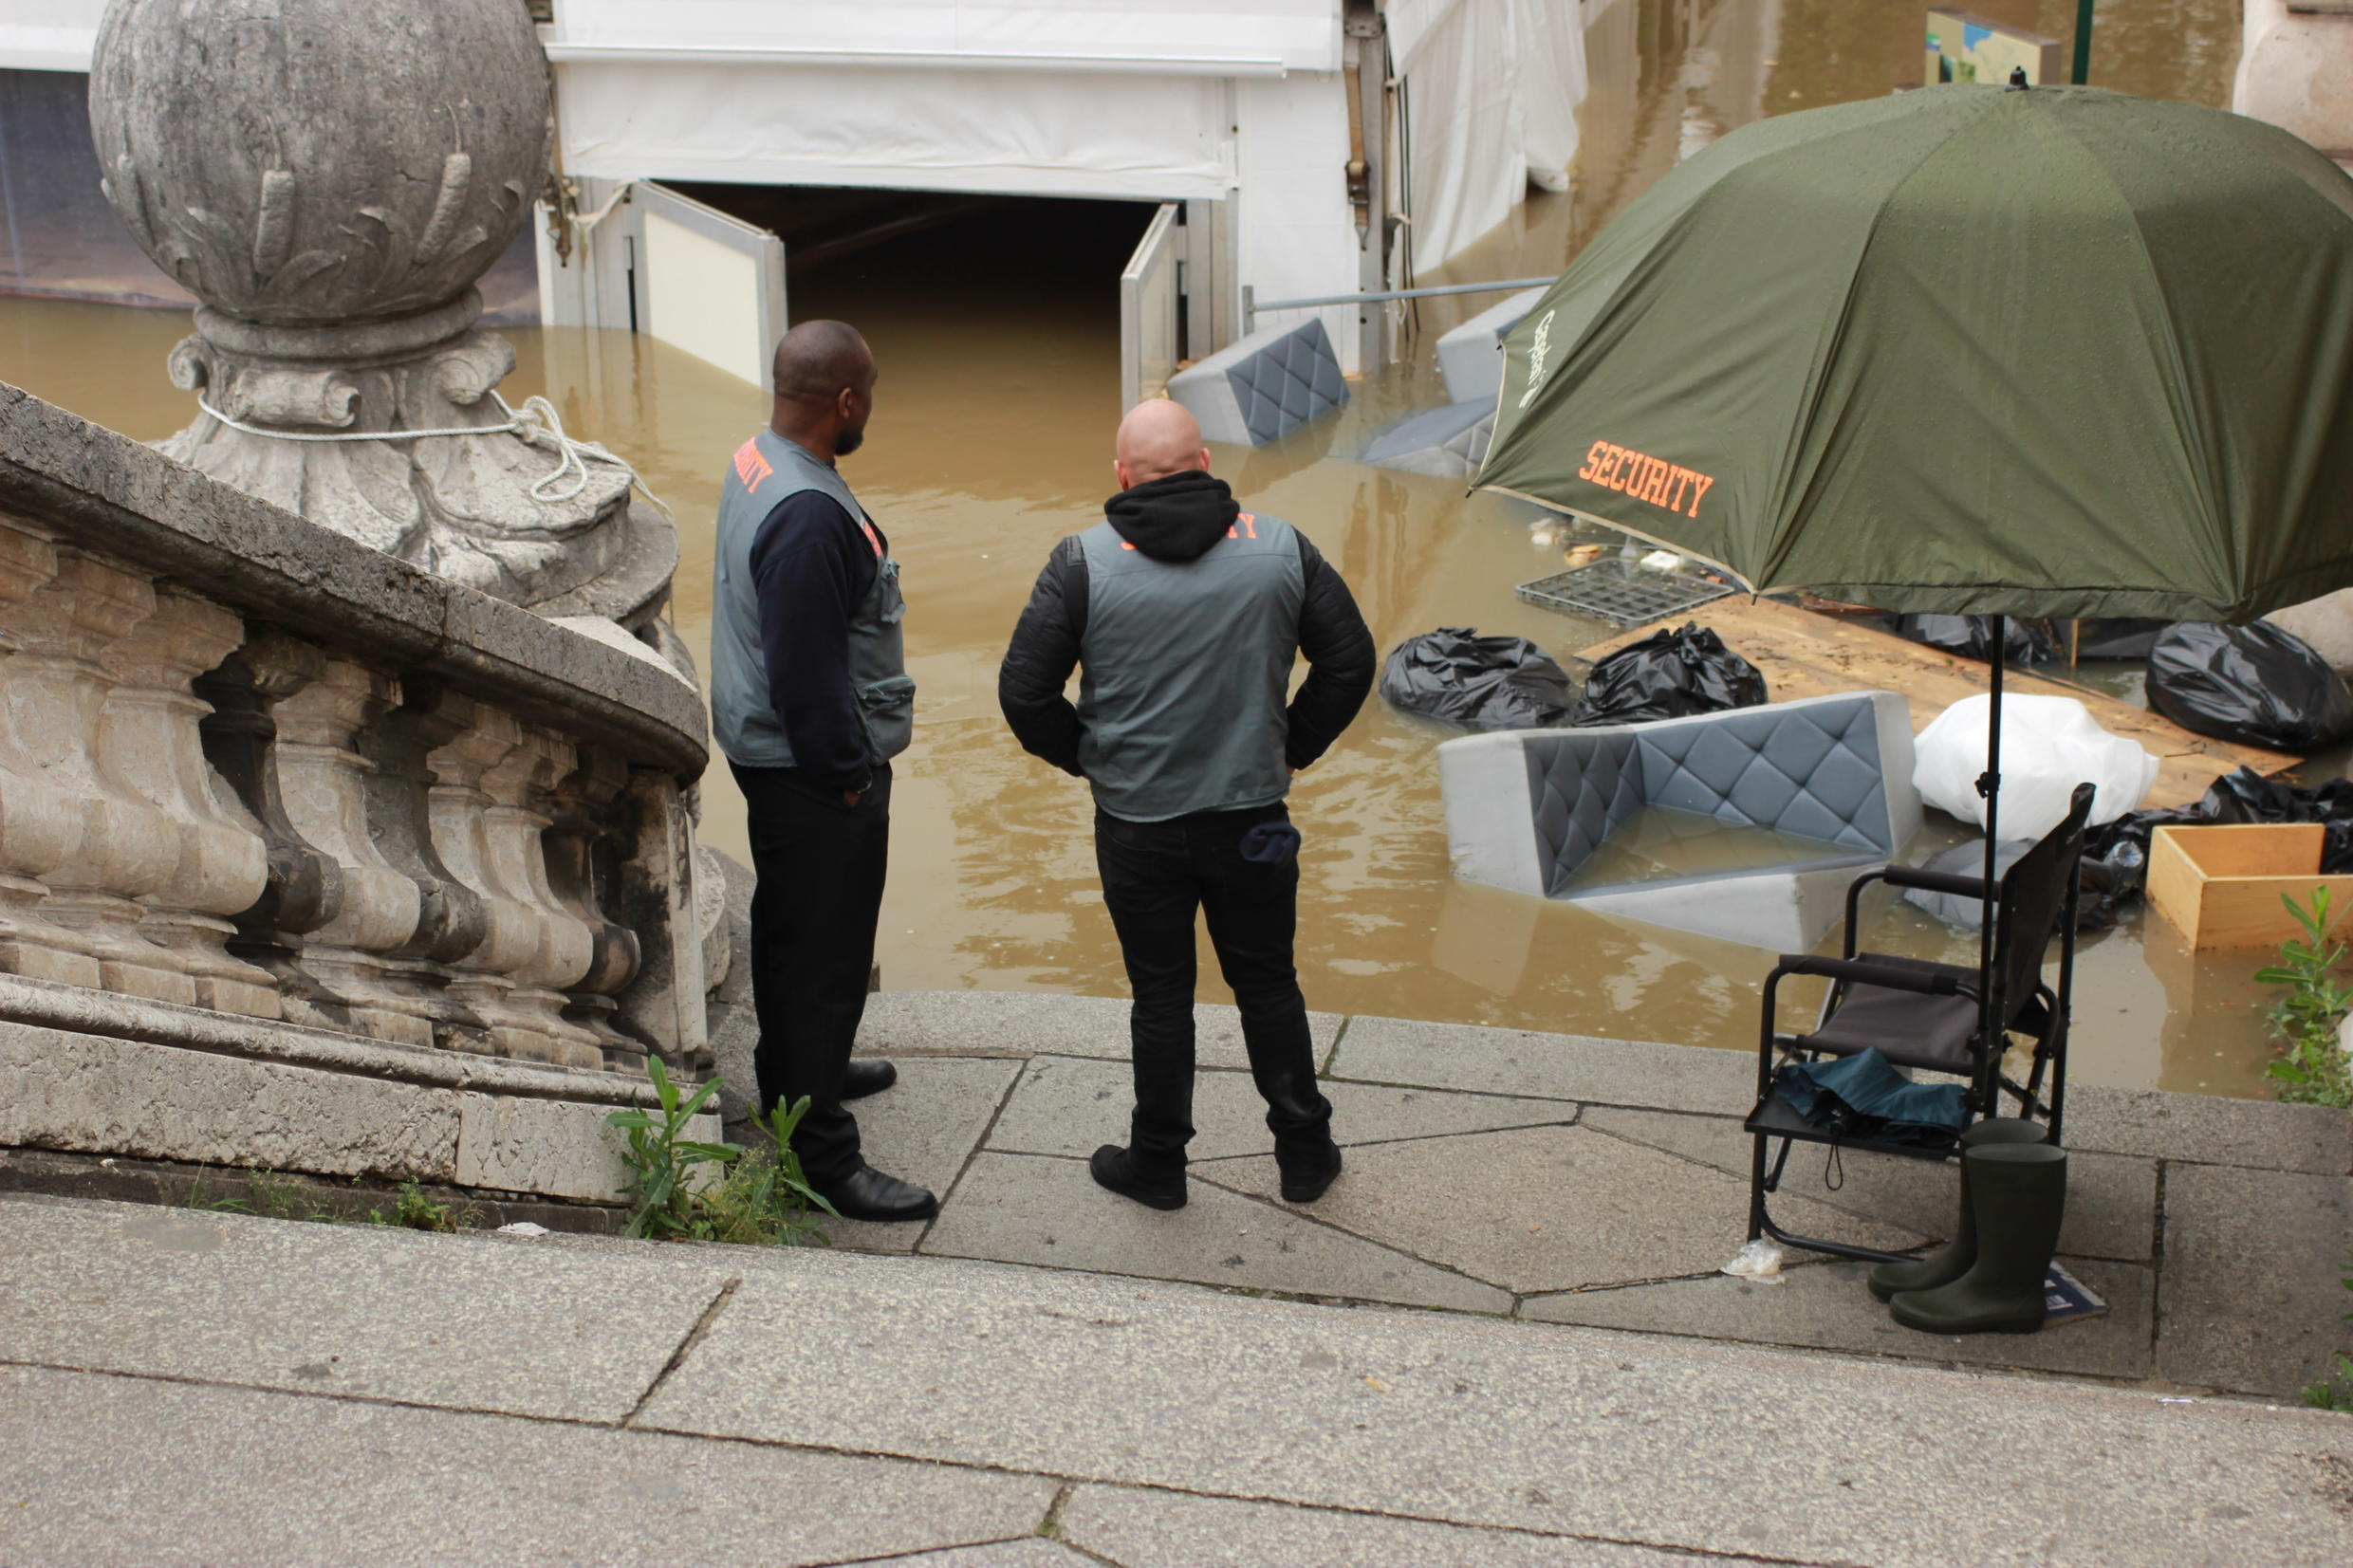 Two security guards look at the furniture that was washed out of a bar-lounge located on the banks of the Seine near the Alexandre III Bridge.